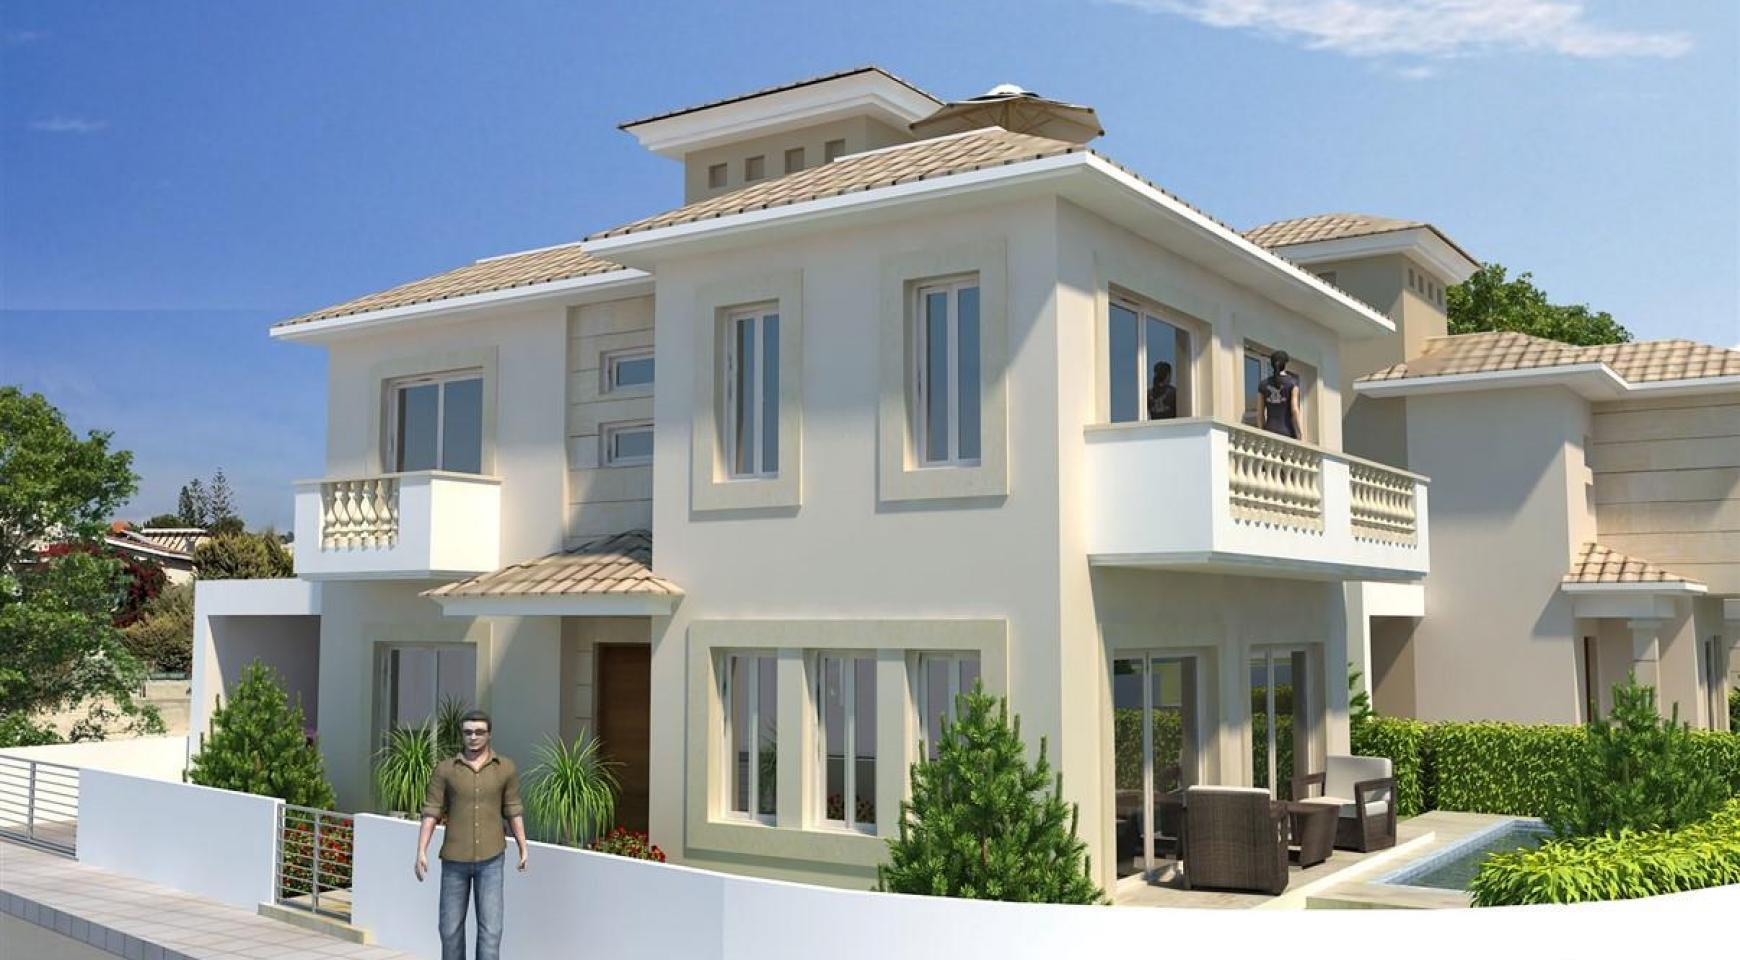 3 Bedroom Villa within a New Project - 22